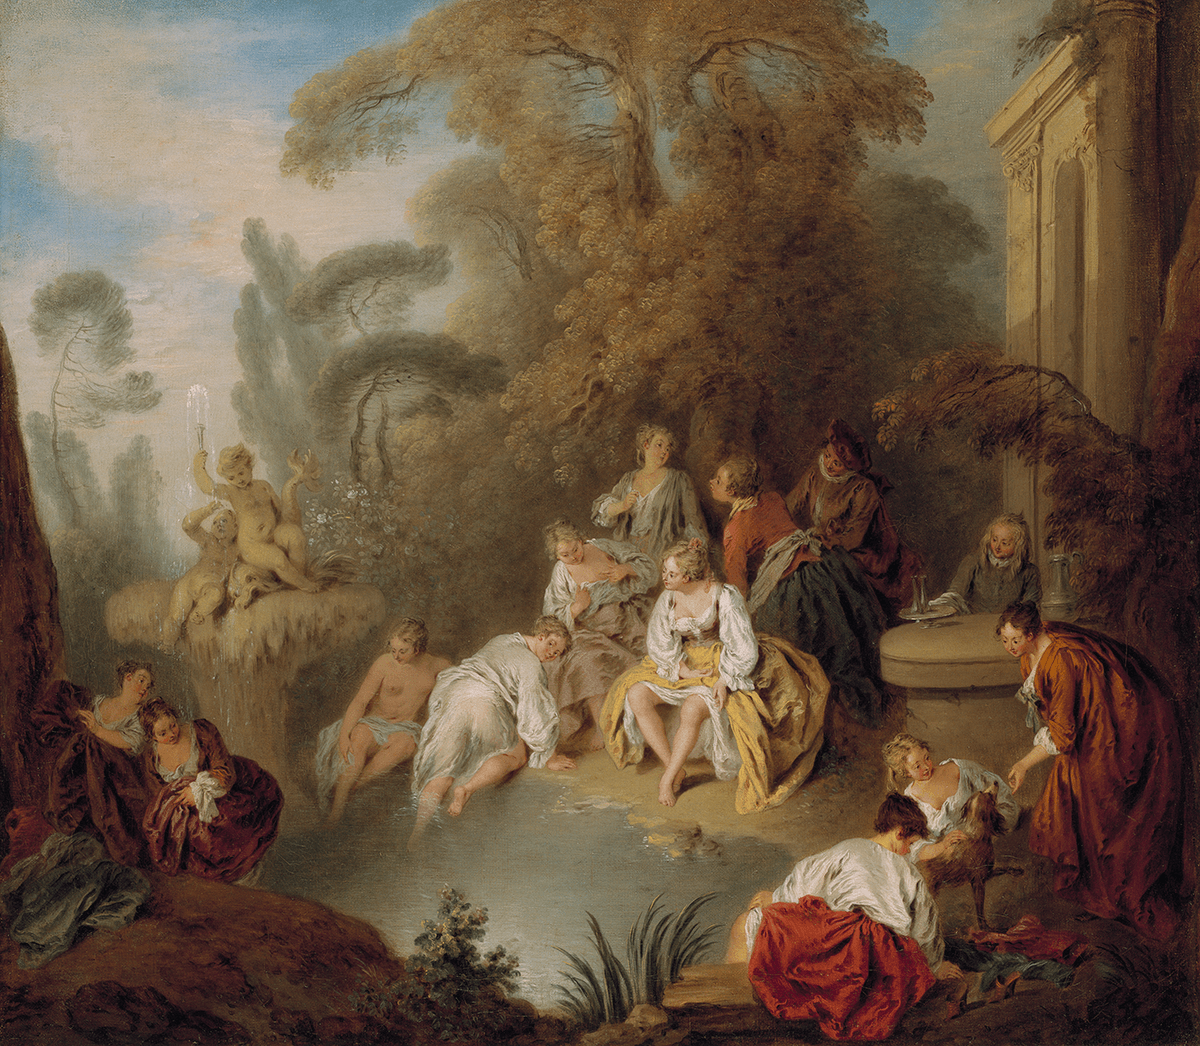 A group of elegantly dressed young people converse and flirt in a lush park setting.